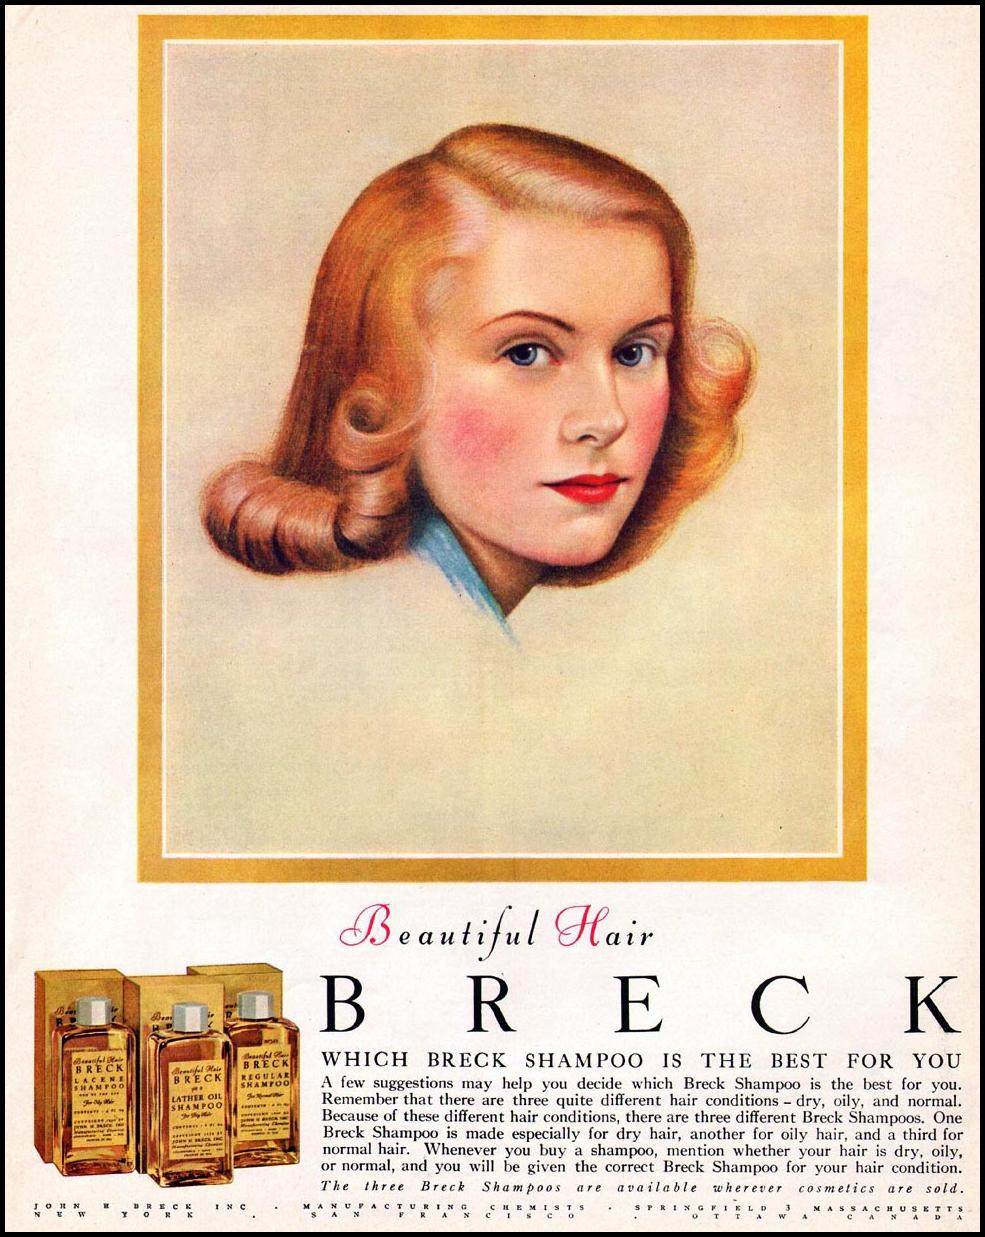 BRECK SHAMPOO LADIES' HOME JOURNAL 07/01/1949 p. 133